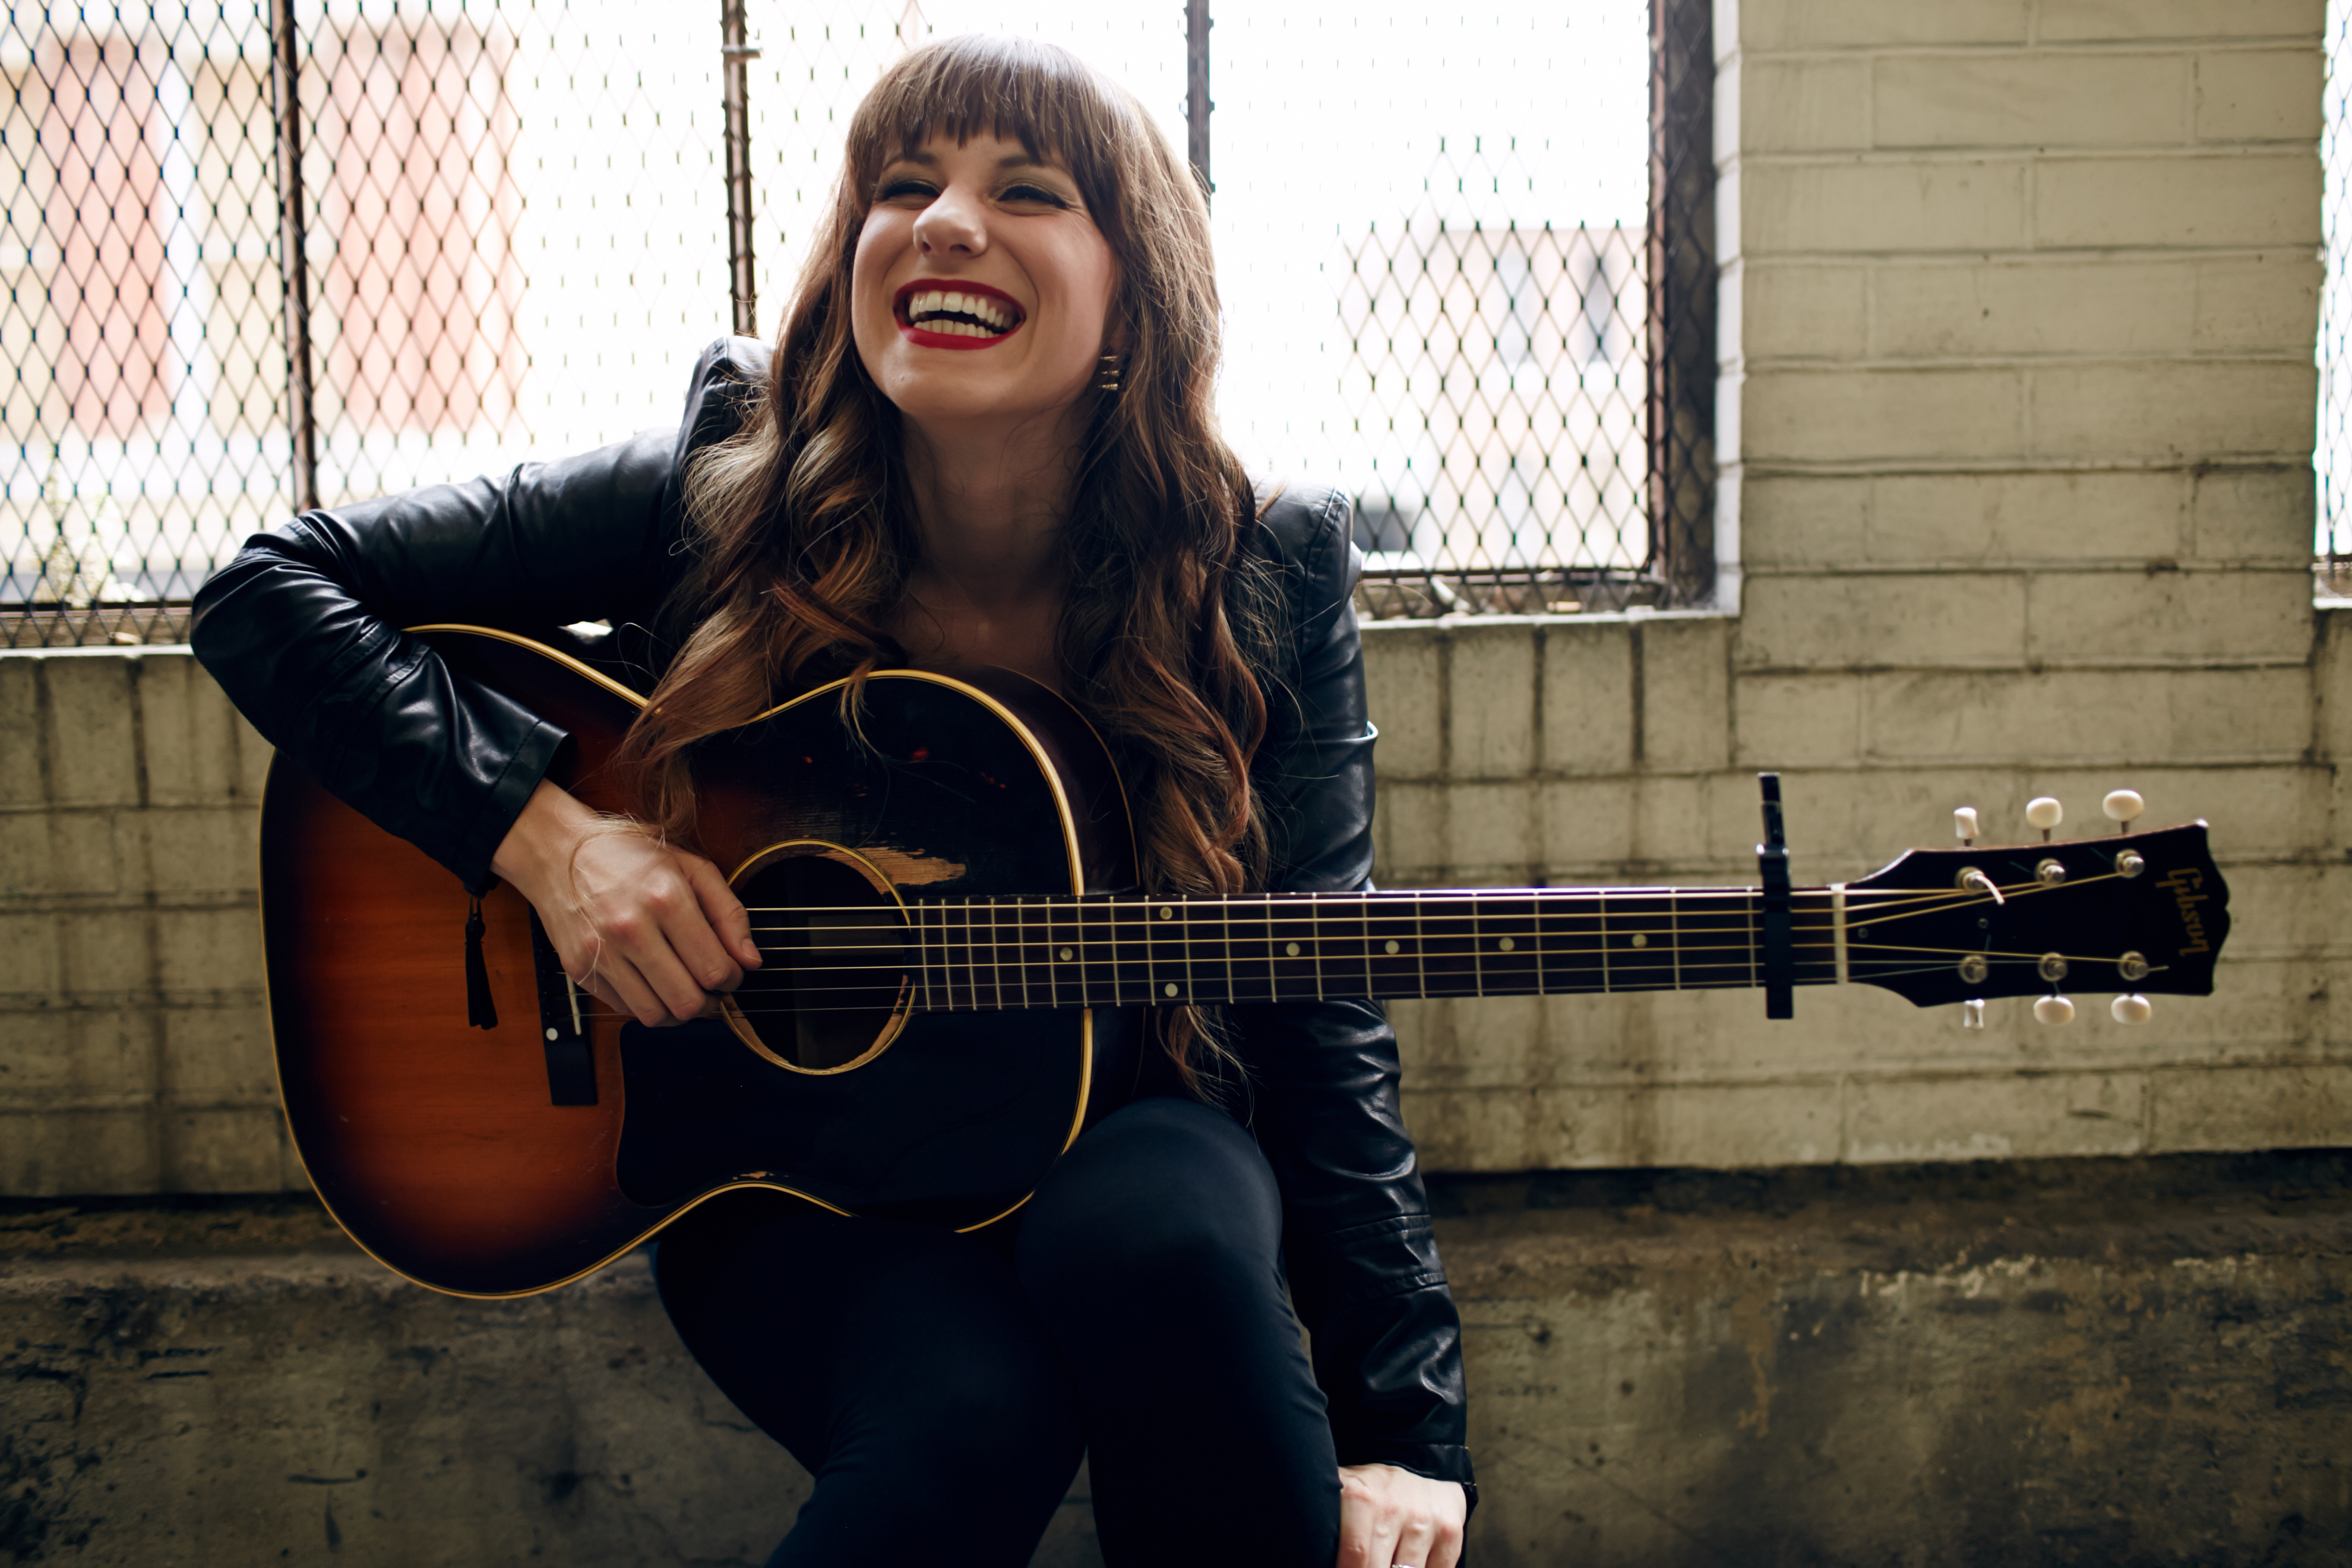 Caitlyn Smith Interview Caitlyn Smith has made a name for herself both a a songwriter and as an artist. Her first big cut was Jason Aldean's It Ain't Easy, which she quickly ...